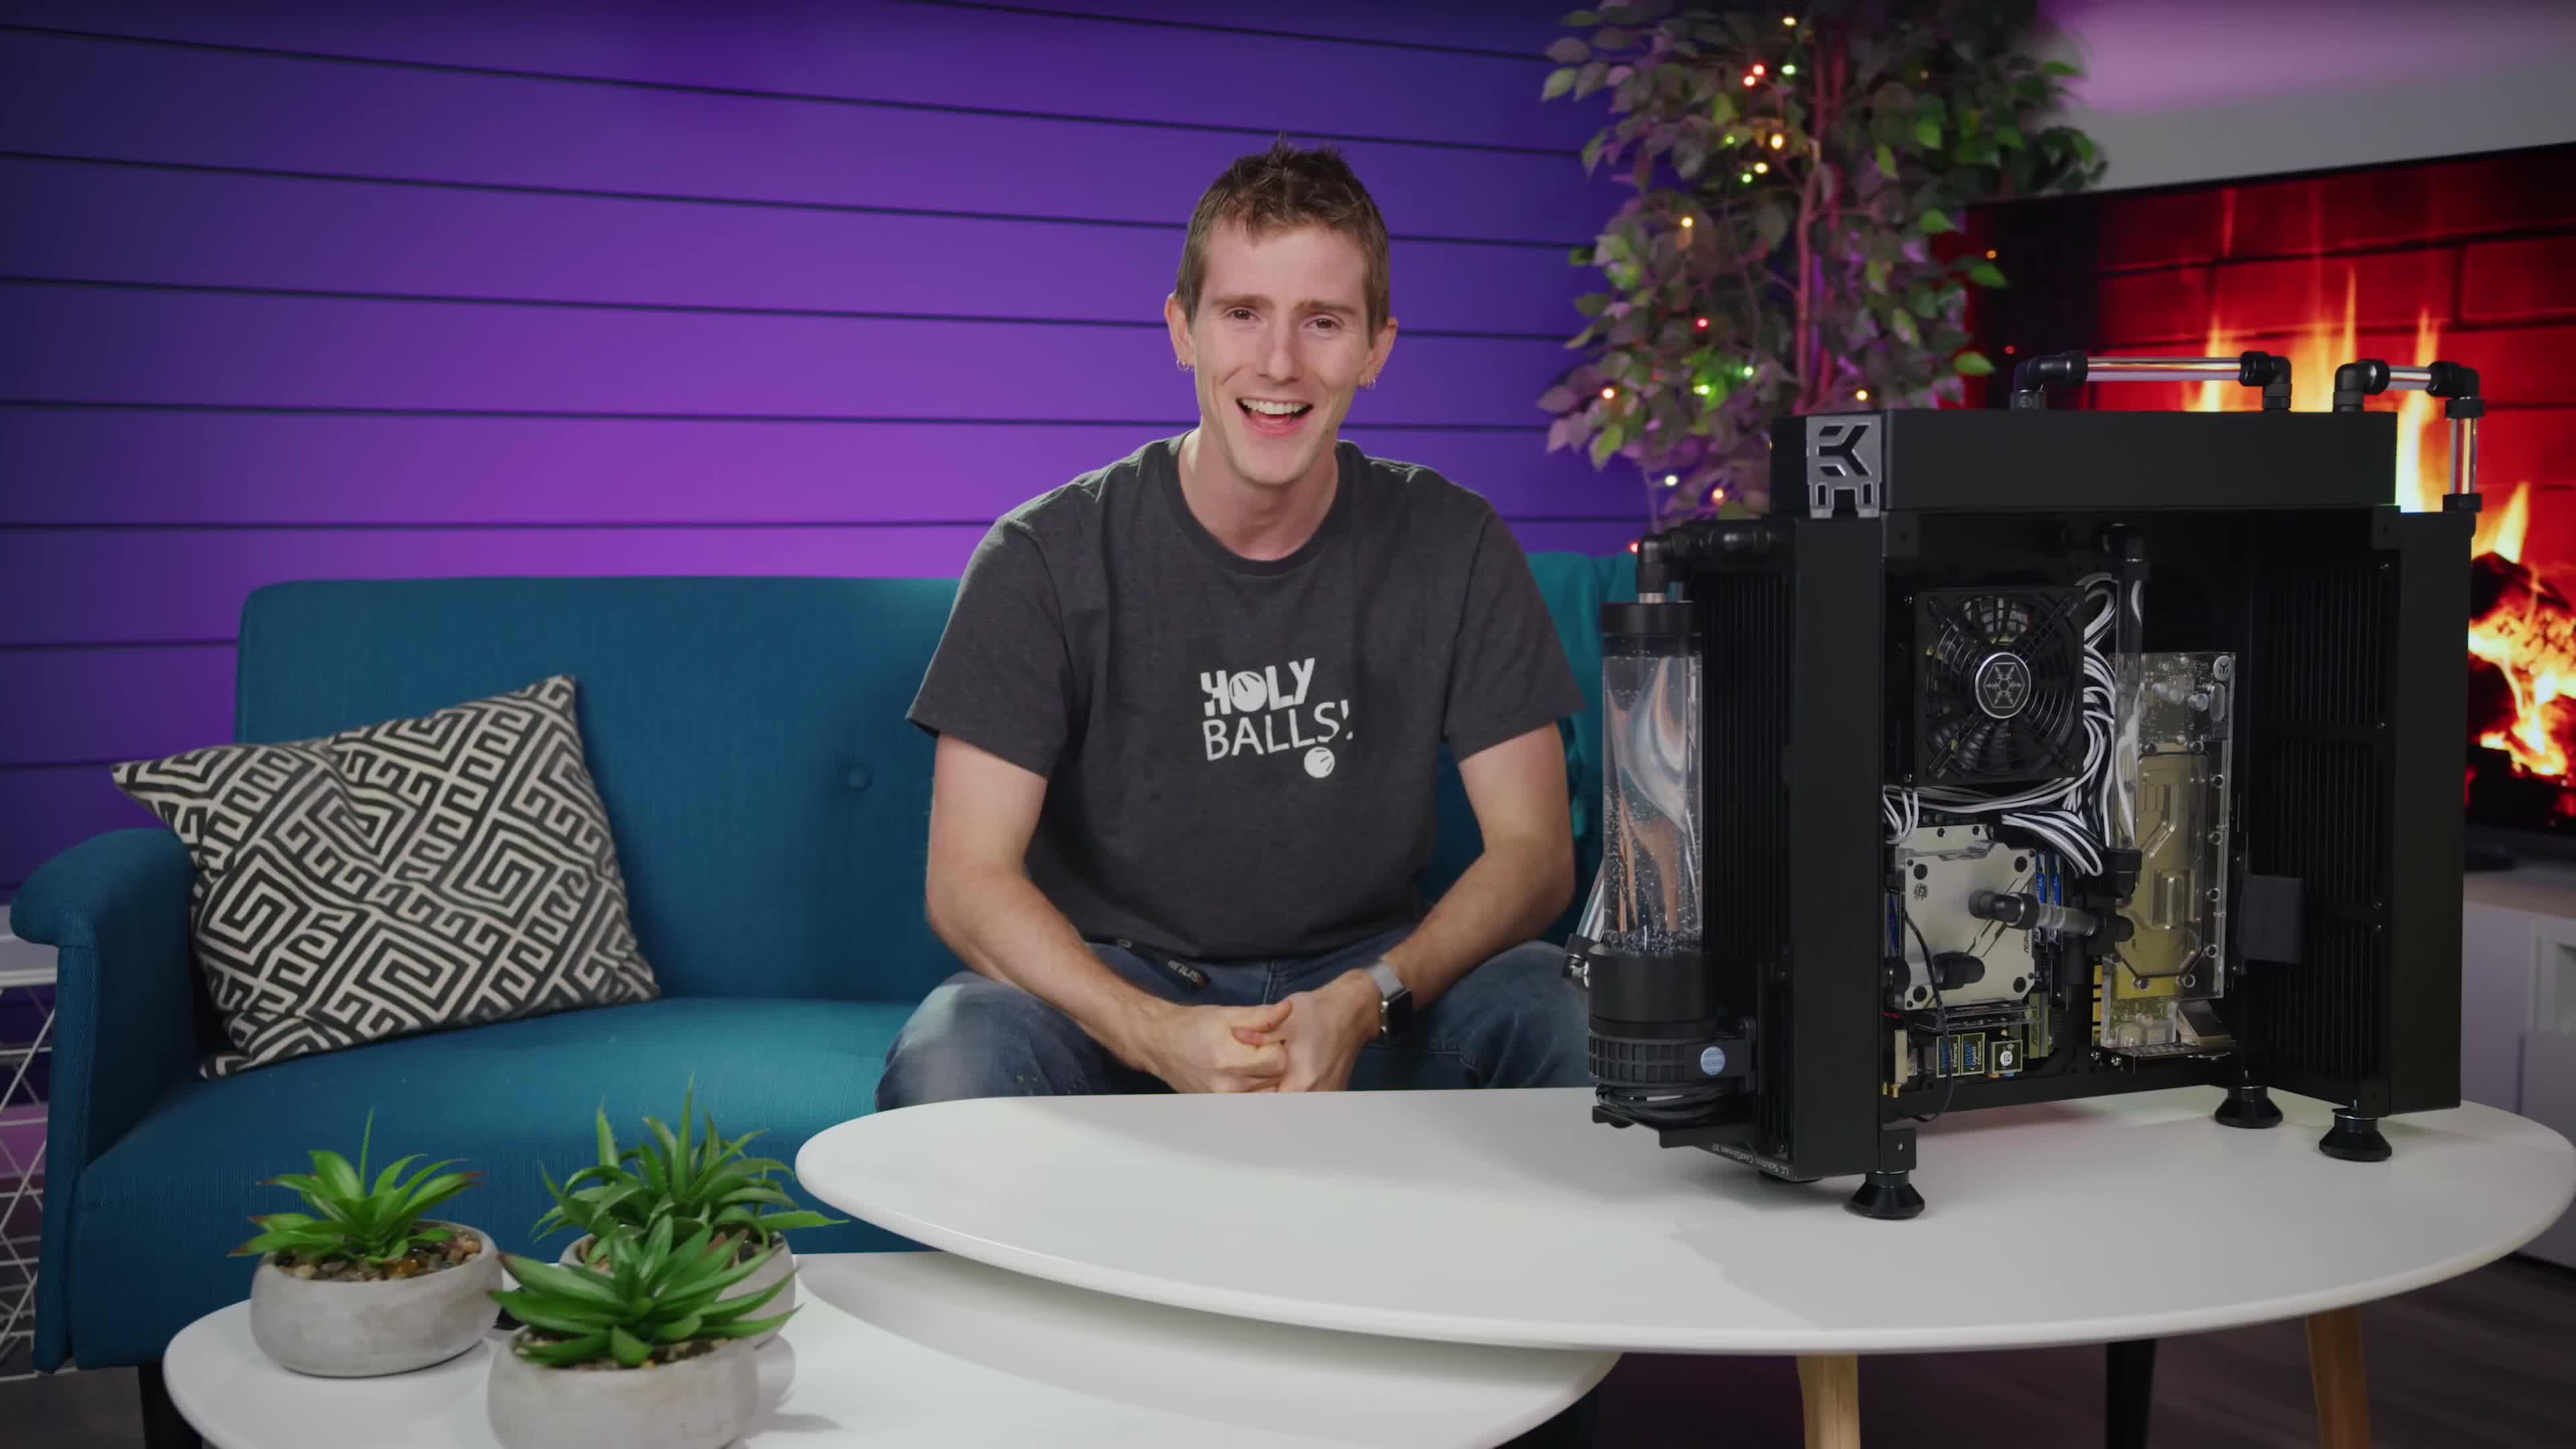 linus sebastian, linus tech tips, reaction gif, Haha... oh that's awful GIFs